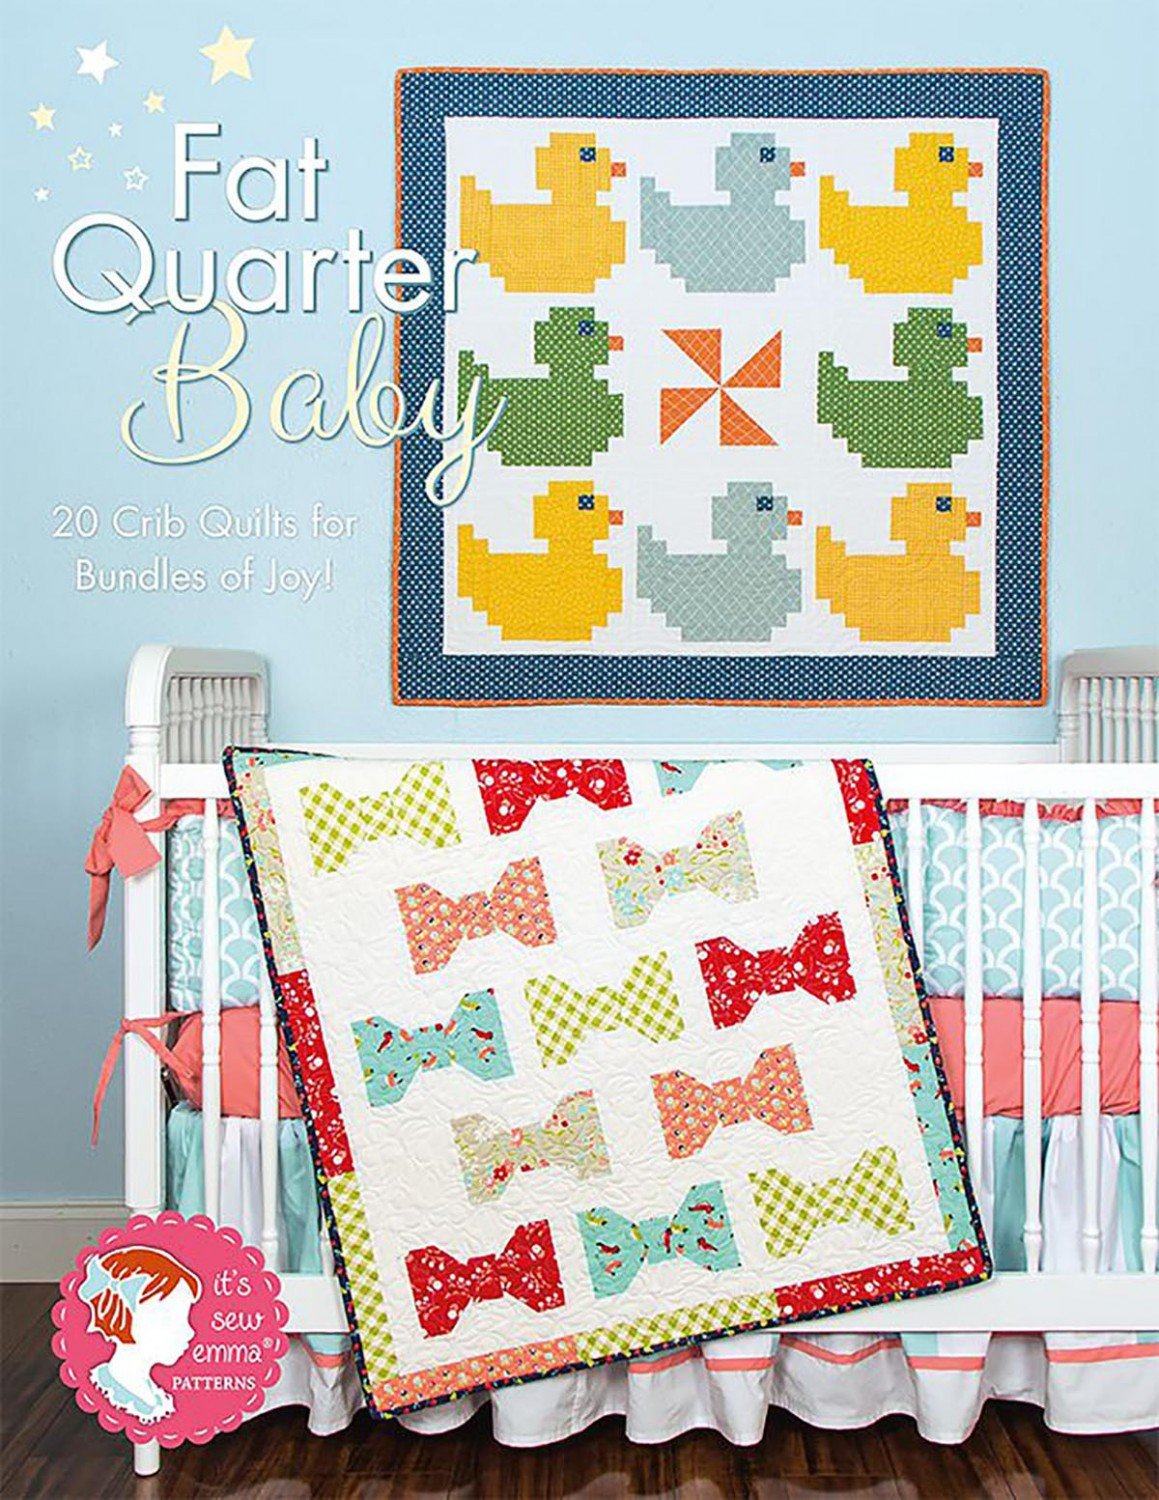 Fat Quarter Baby - ISE-909 - MAY BE RESTOCKED UPON REQUEST